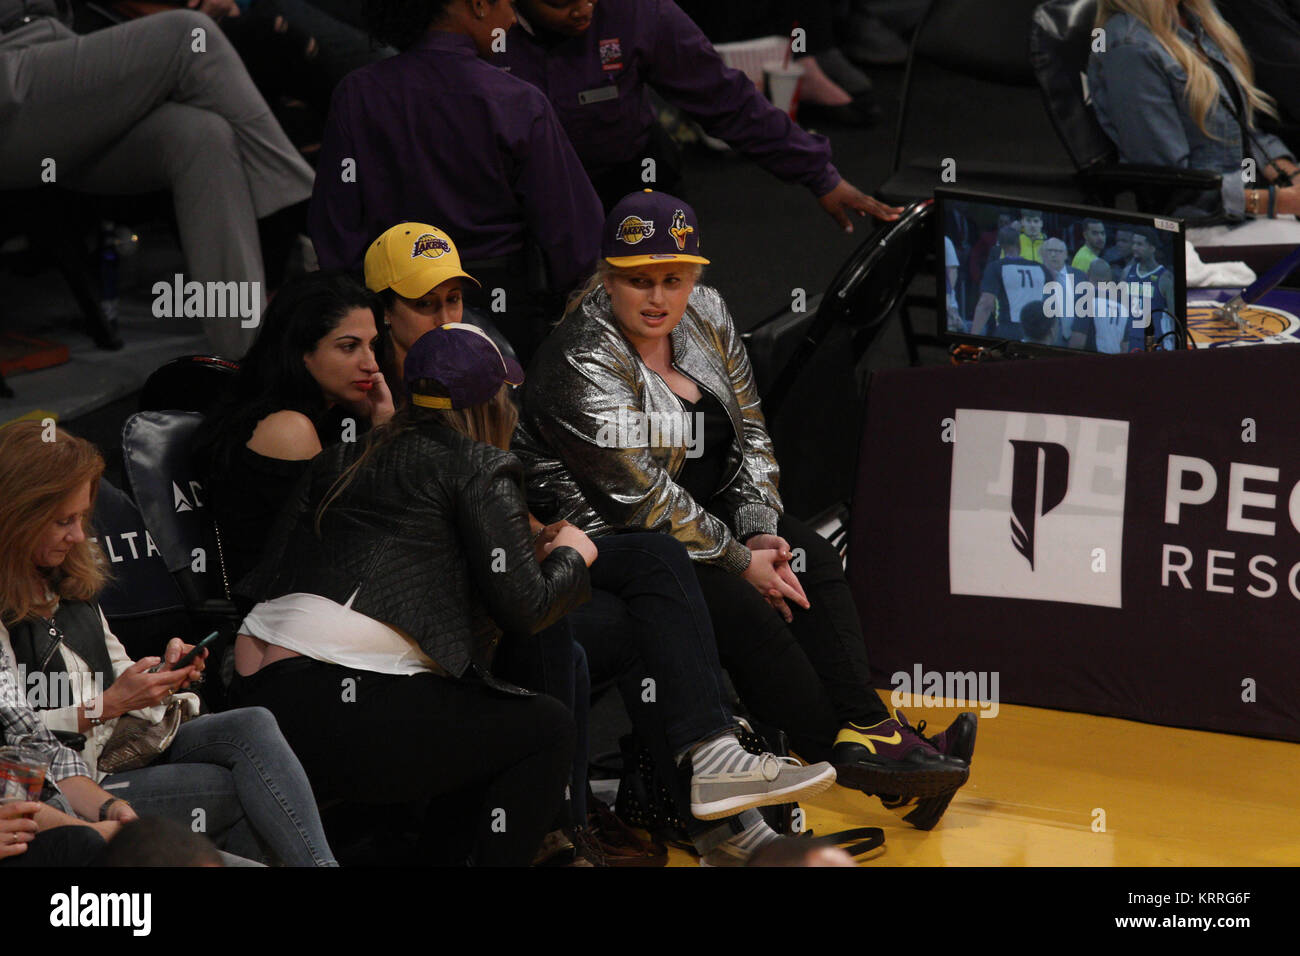 181d9e86ee4 Sunday November 19, 2017; Celebs having a good time during the game. The